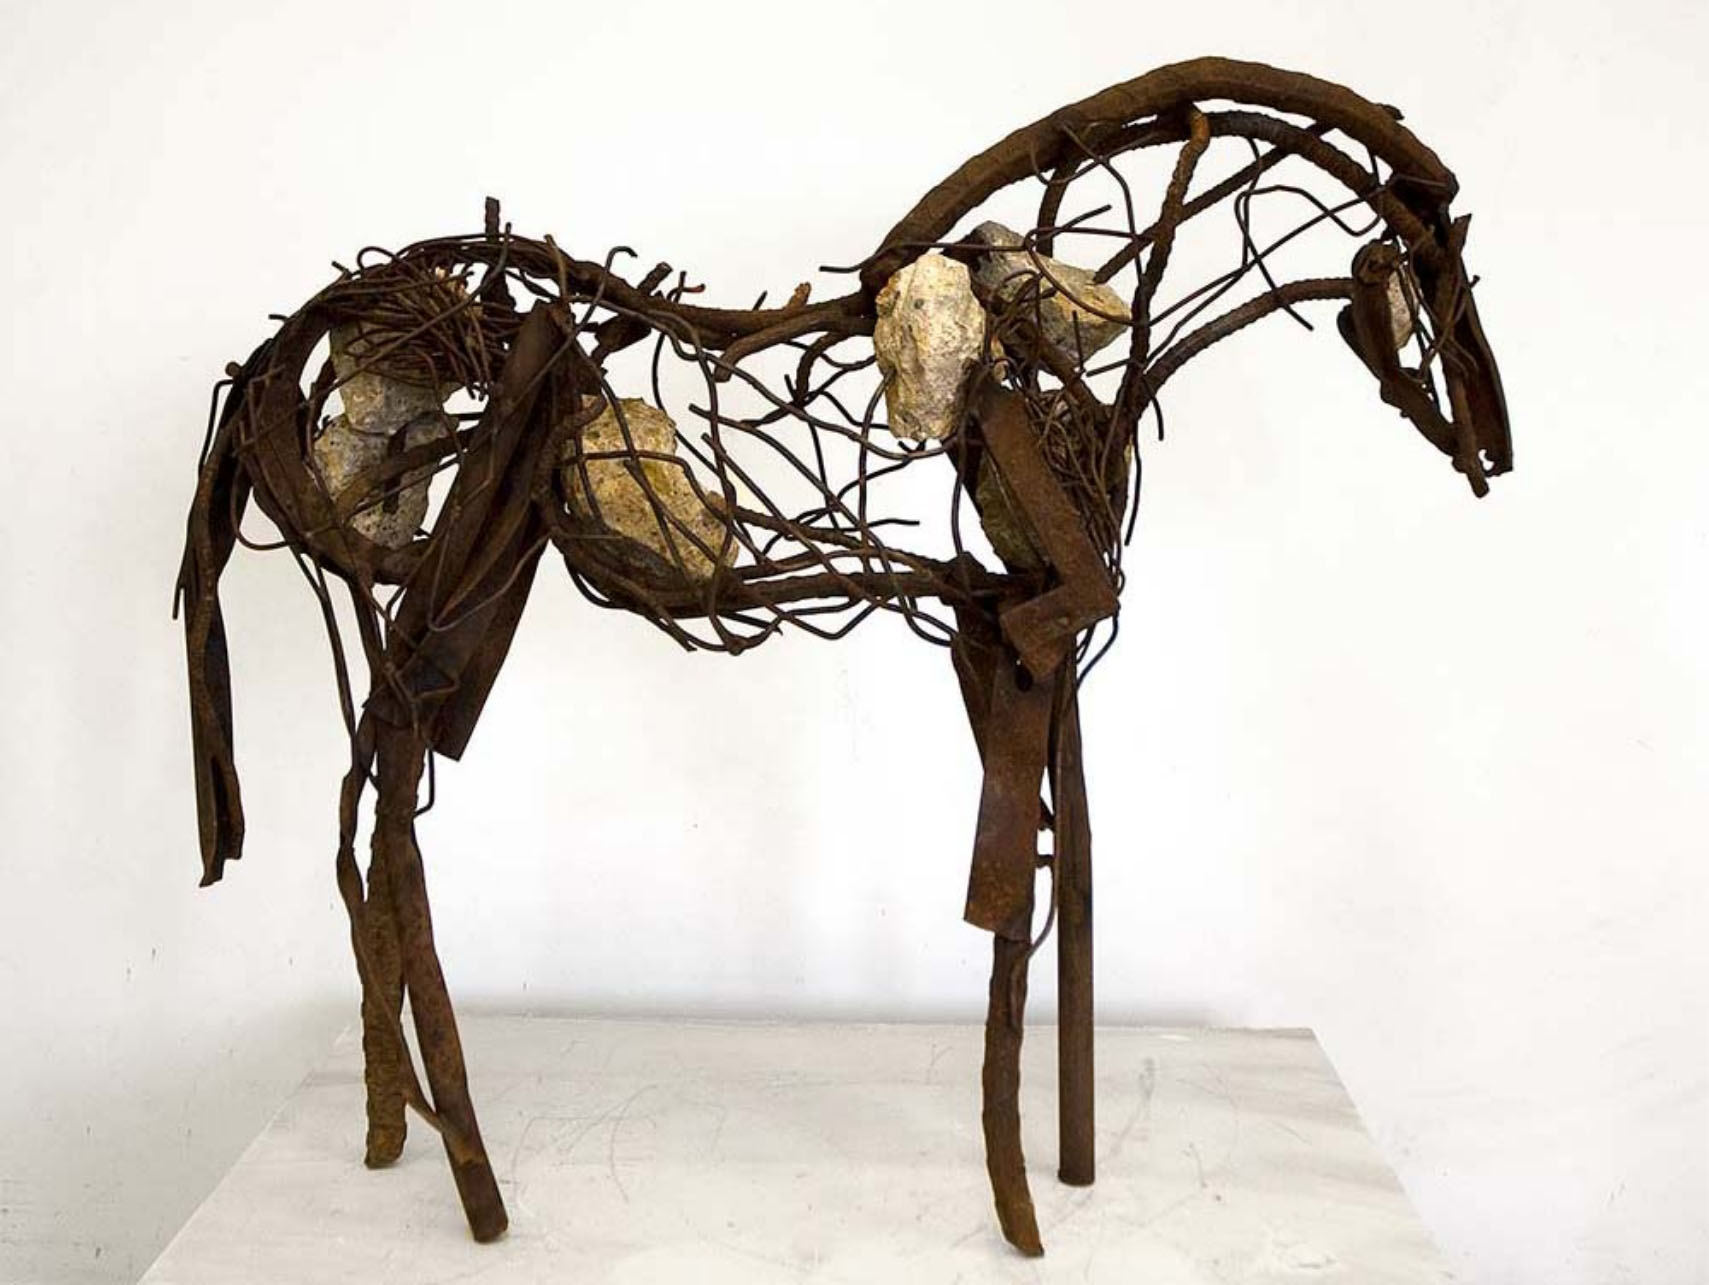 Equestrian Artists: Sculptures & Paintings